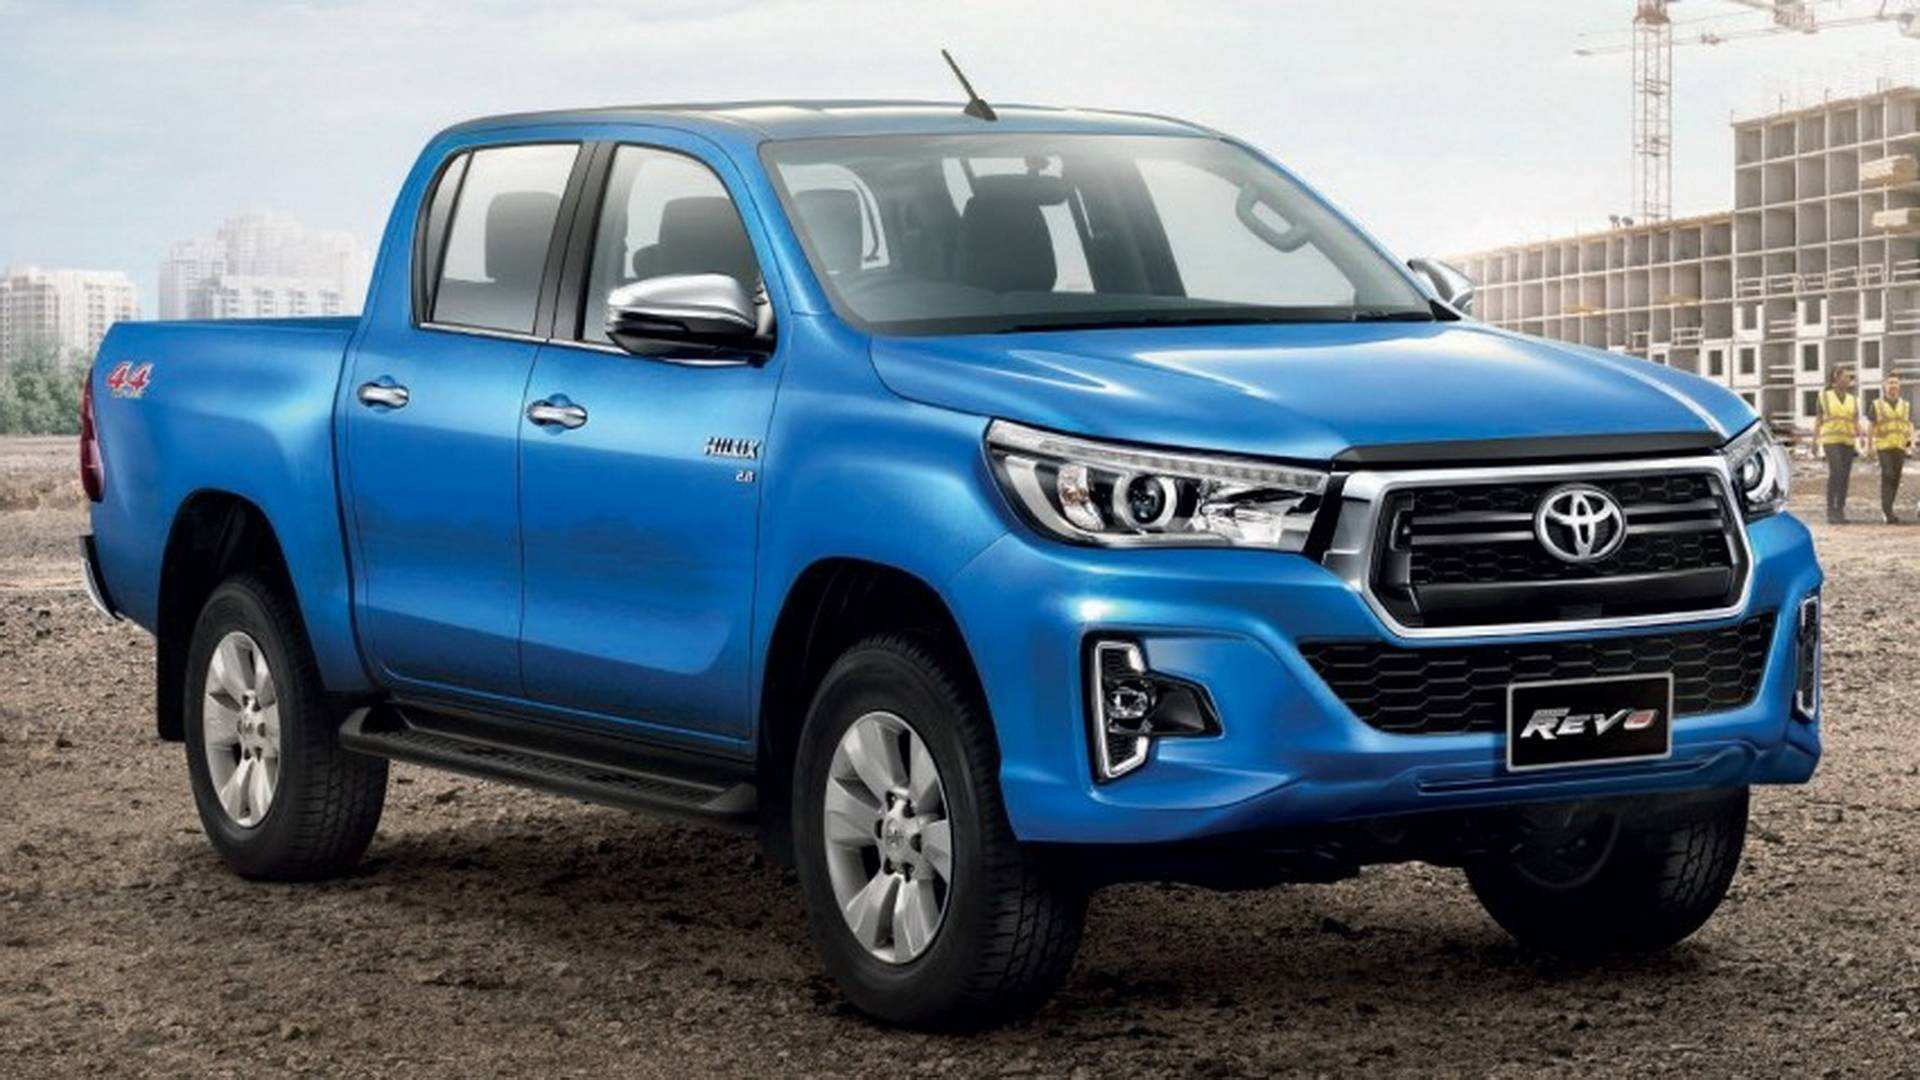 93 The Best 2019 Toyota Hilux Spy Shots Release